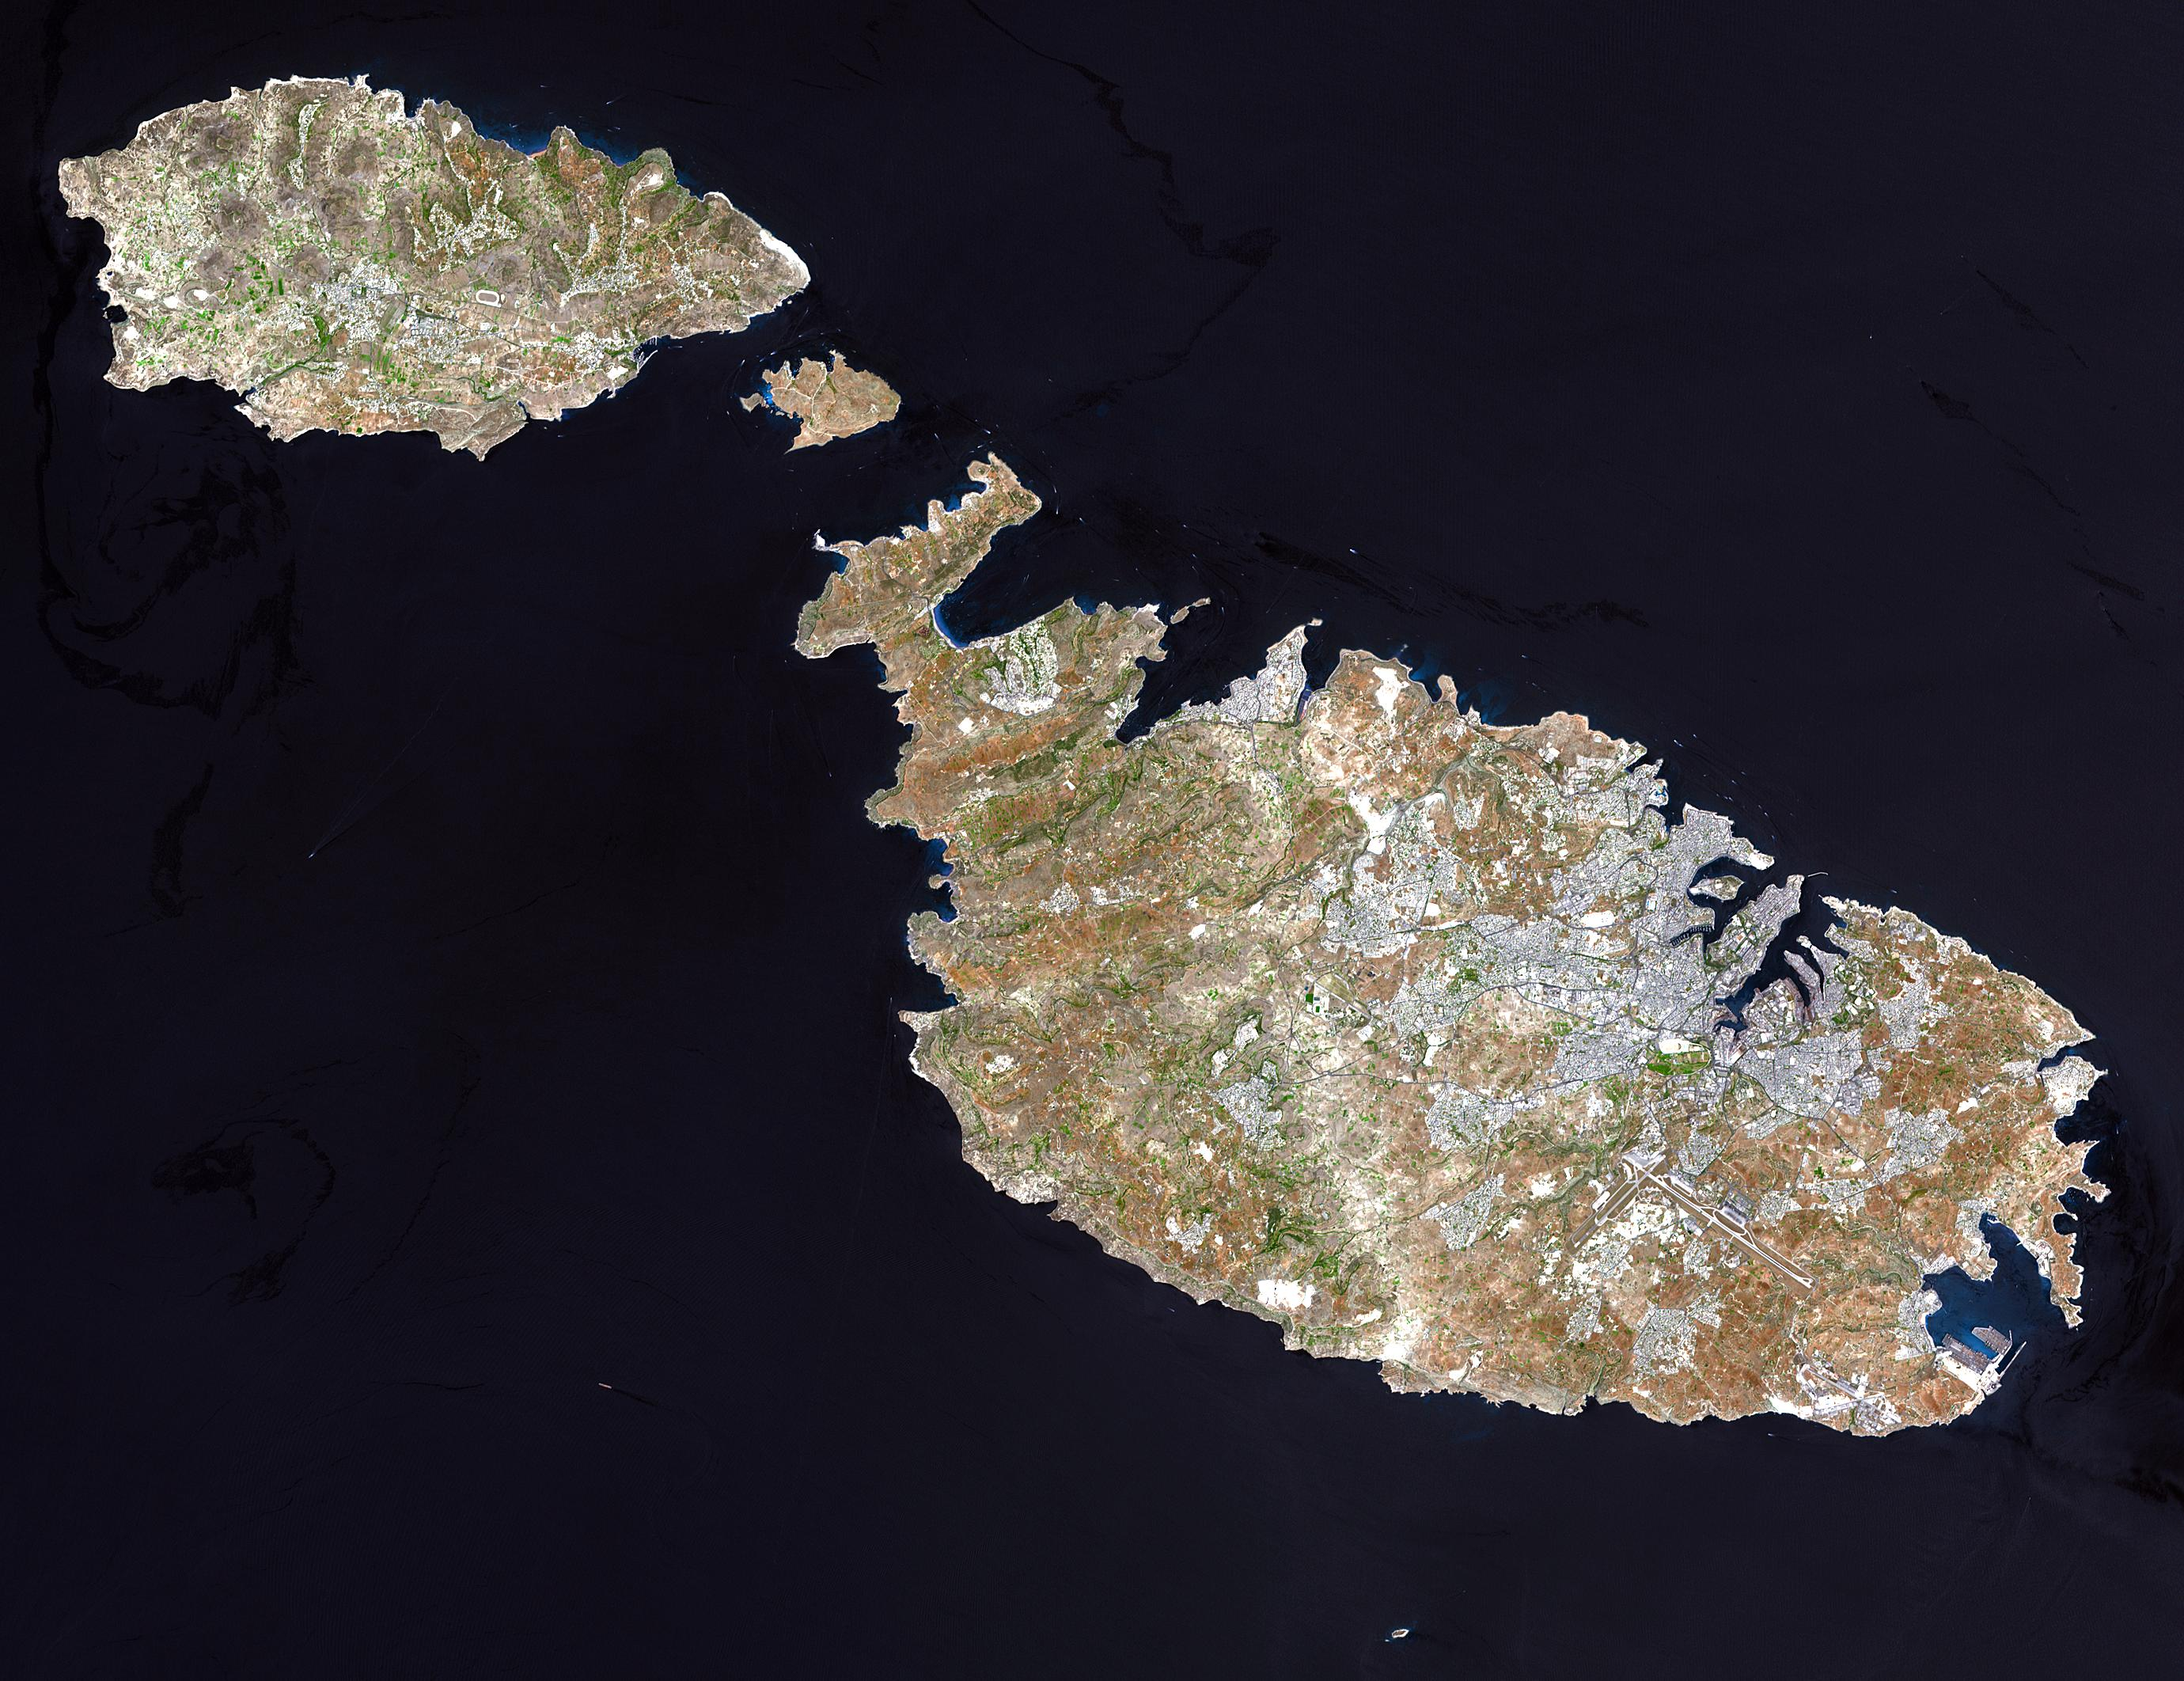 Image:Satelite image of Malta